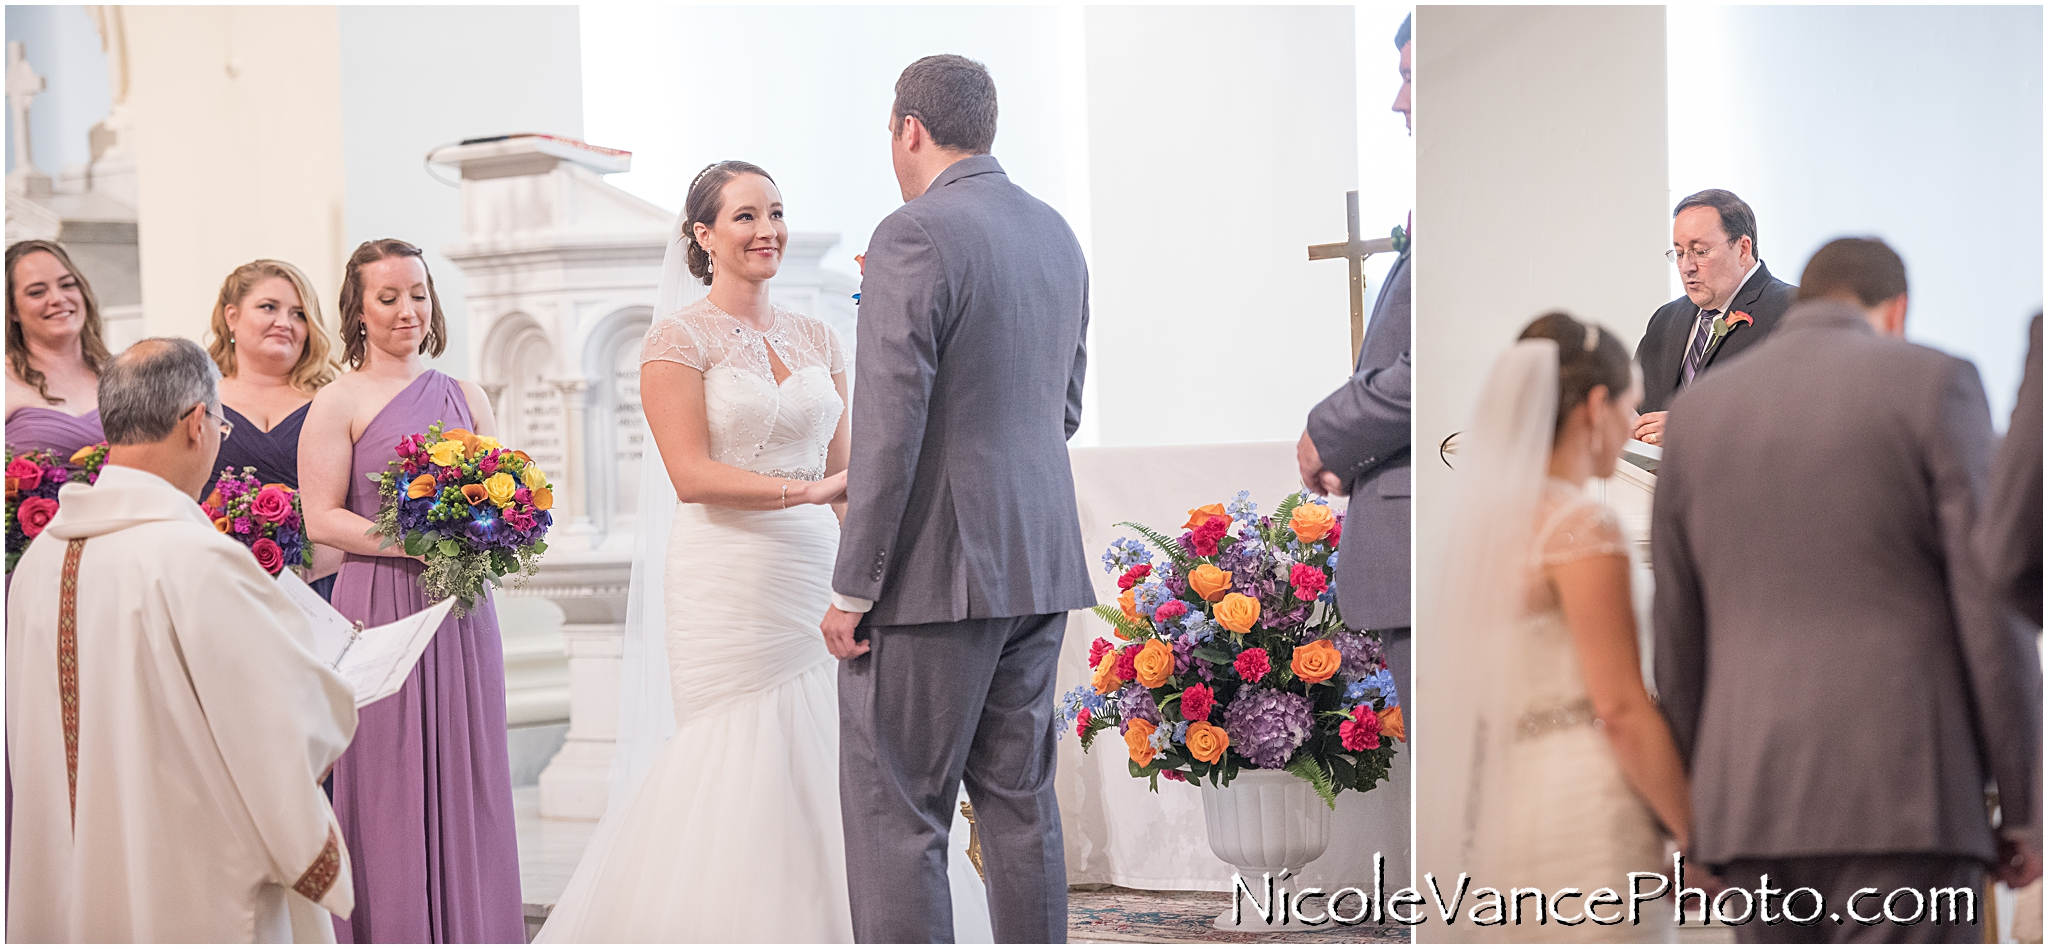 The bride and groom pray during their wedding ceremony at St Peter's Catholic Church in Richmond, VA.